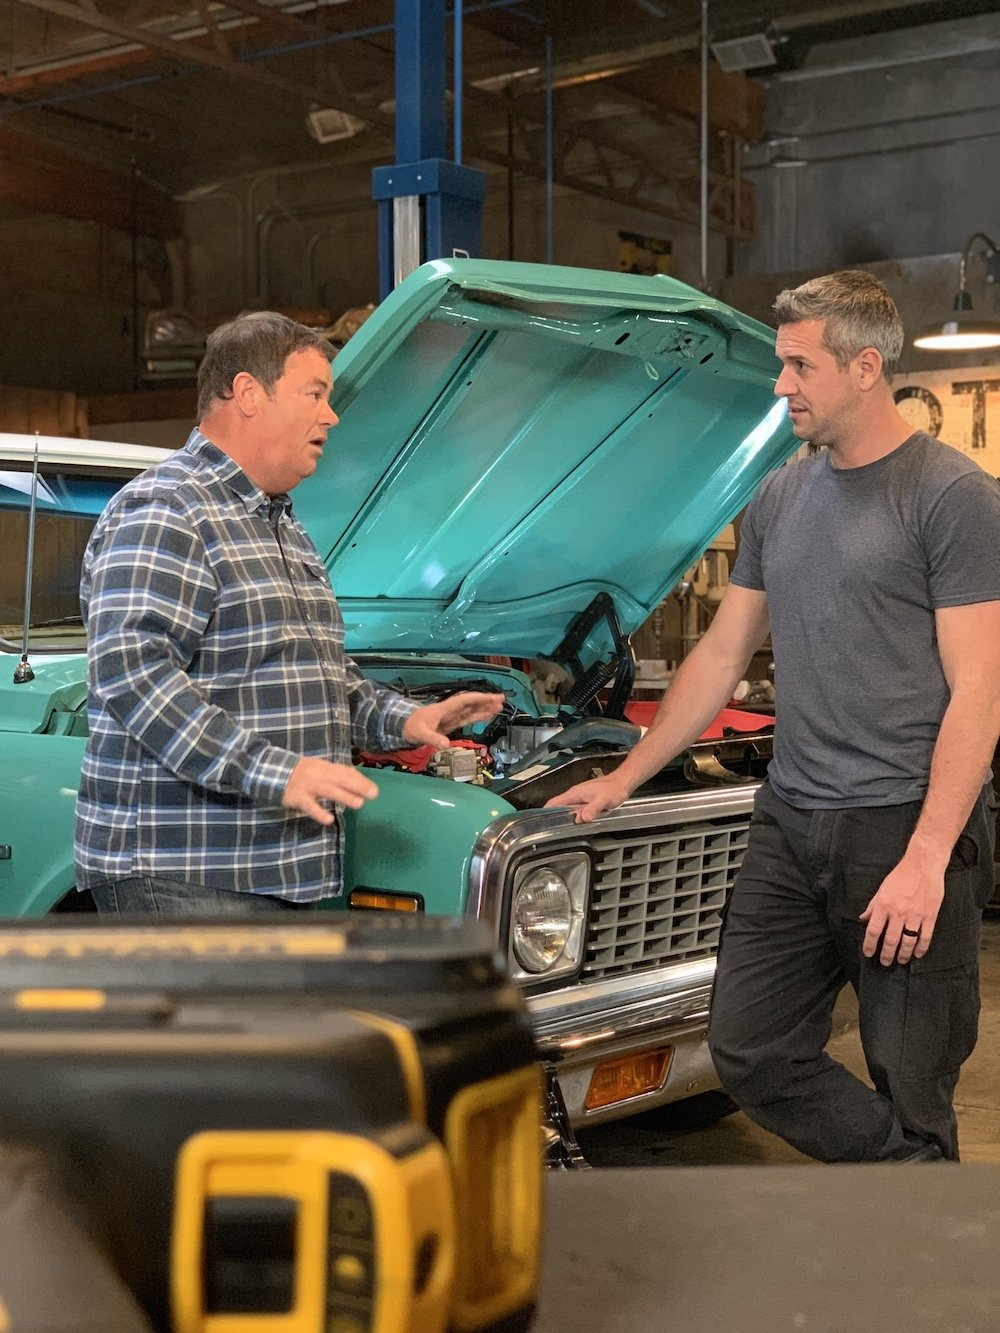 Mike Brewer Motoring - Wheeler Dealers